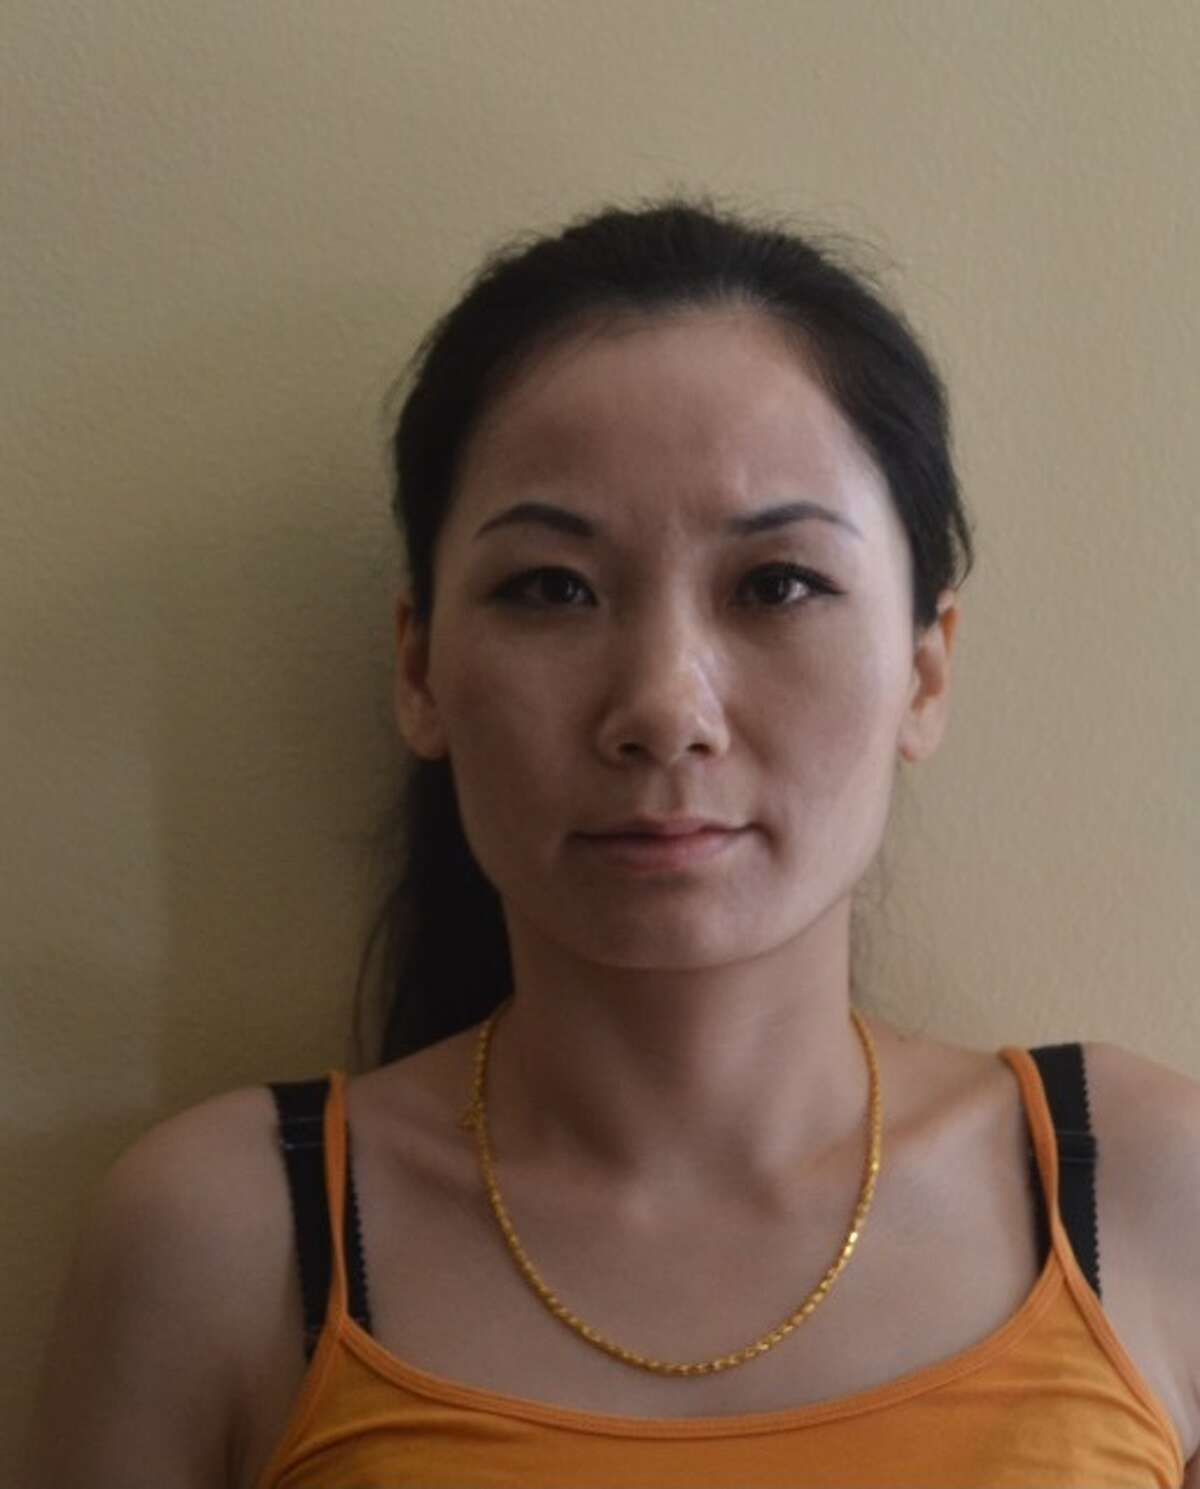 Jinling Wang, 34, was arrested by the Harris County Precinct 4 Constable's Office on Tuesday and was charged with prostitution.